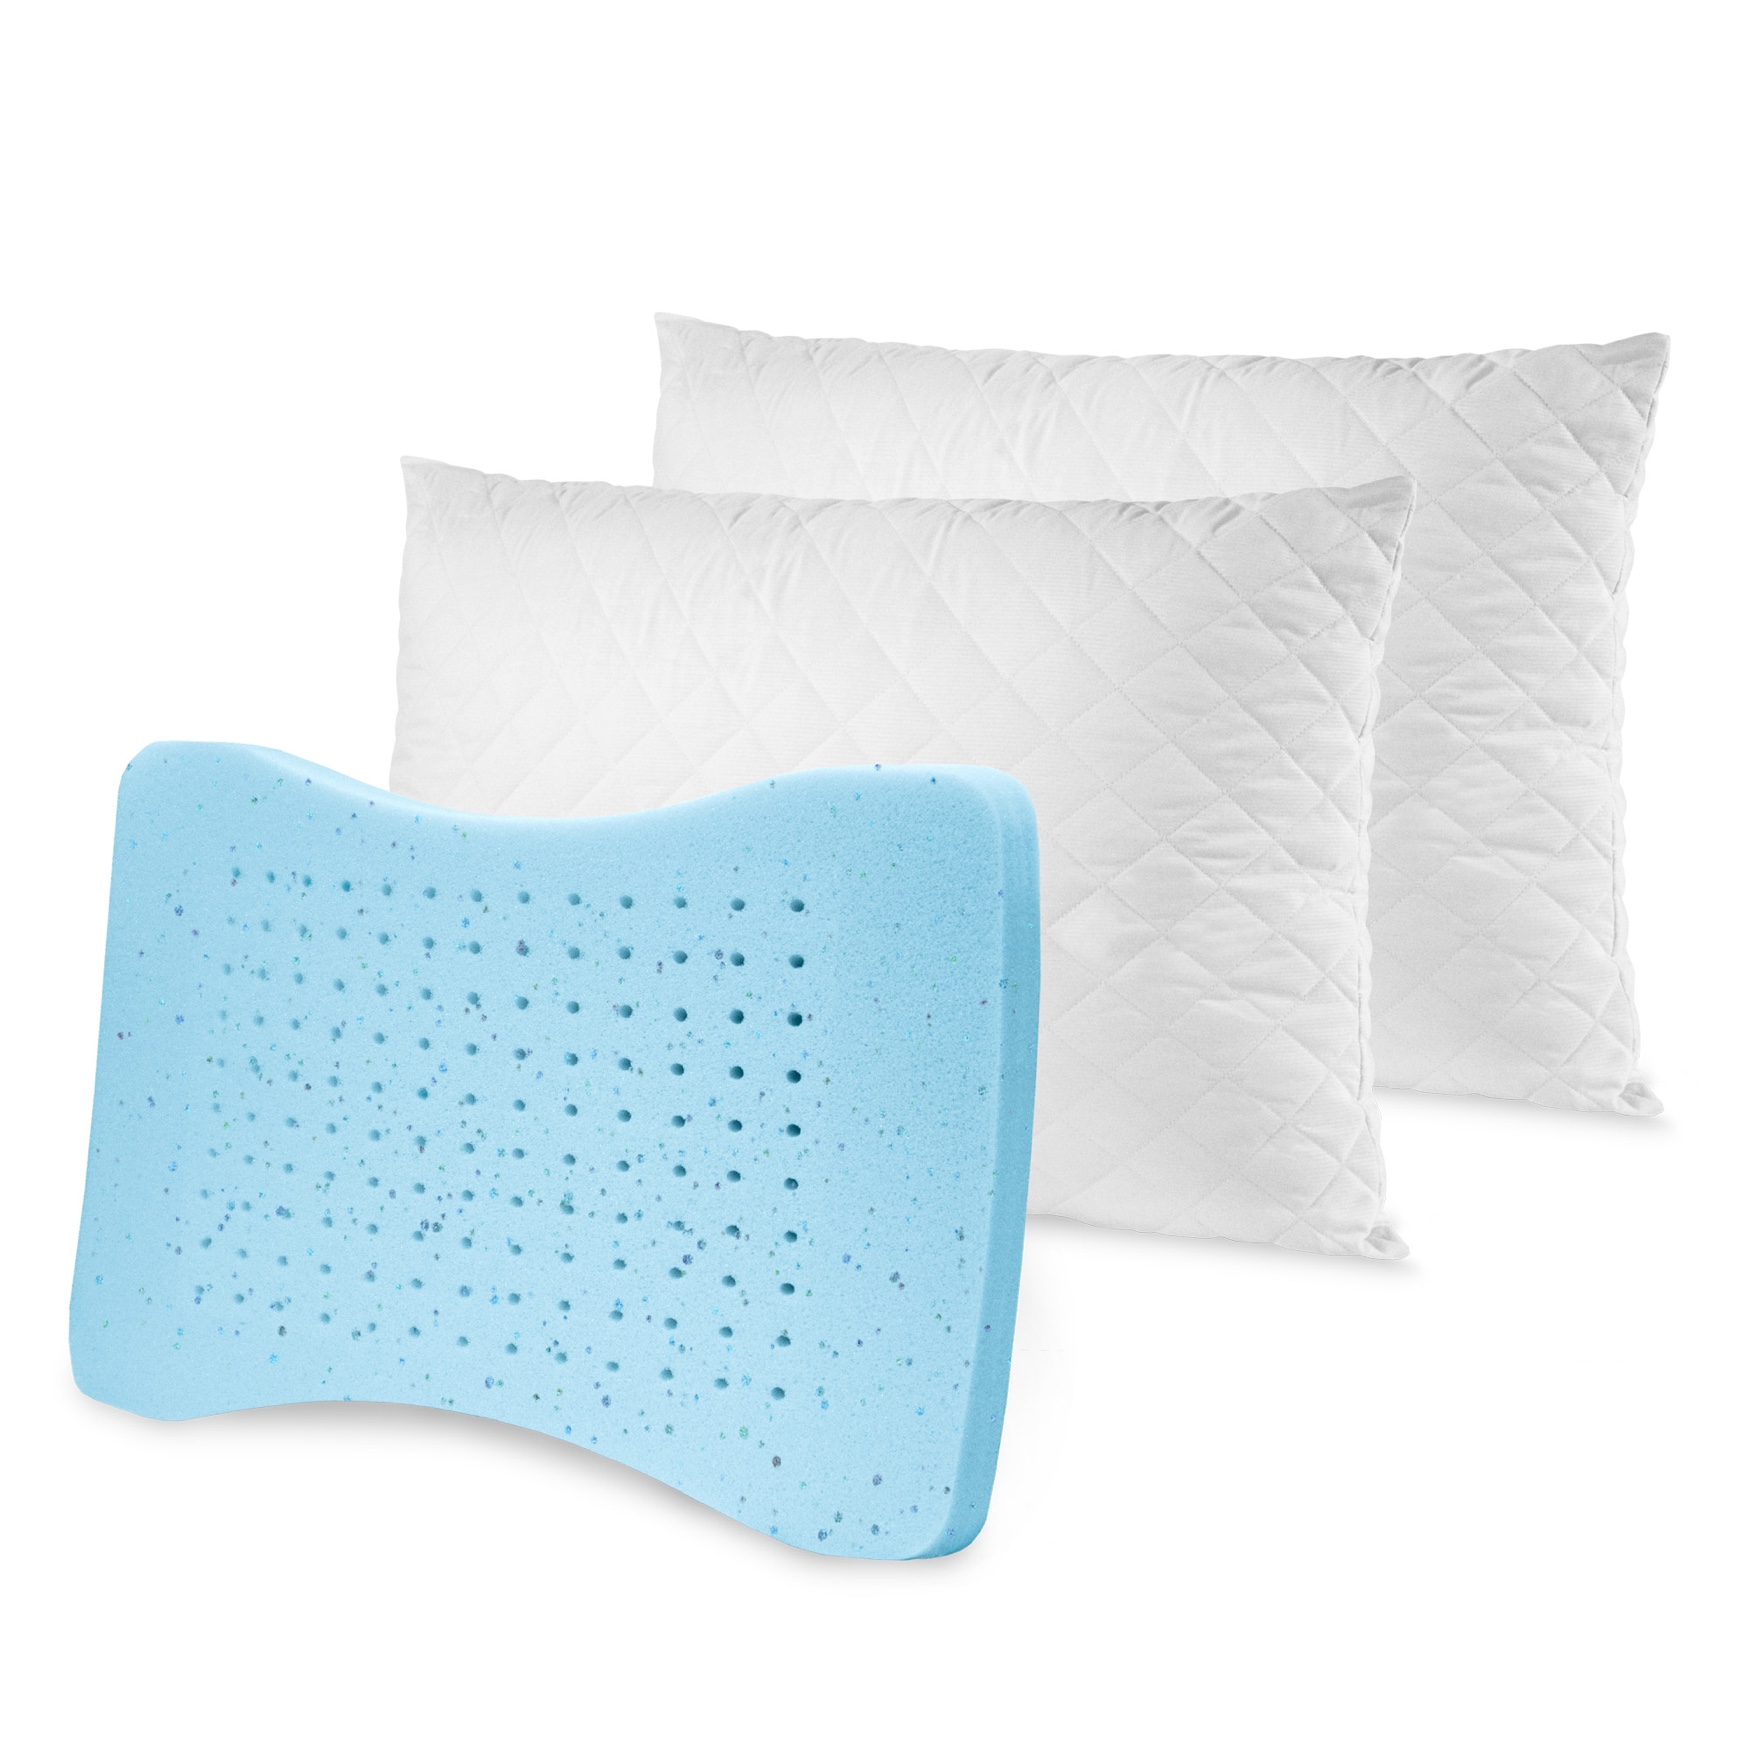 SensorPEDIC MemoryLOFT Deluxe Quilted Pillow with Gel-Infused Memory Foam Center - 2 Pack, WHITE